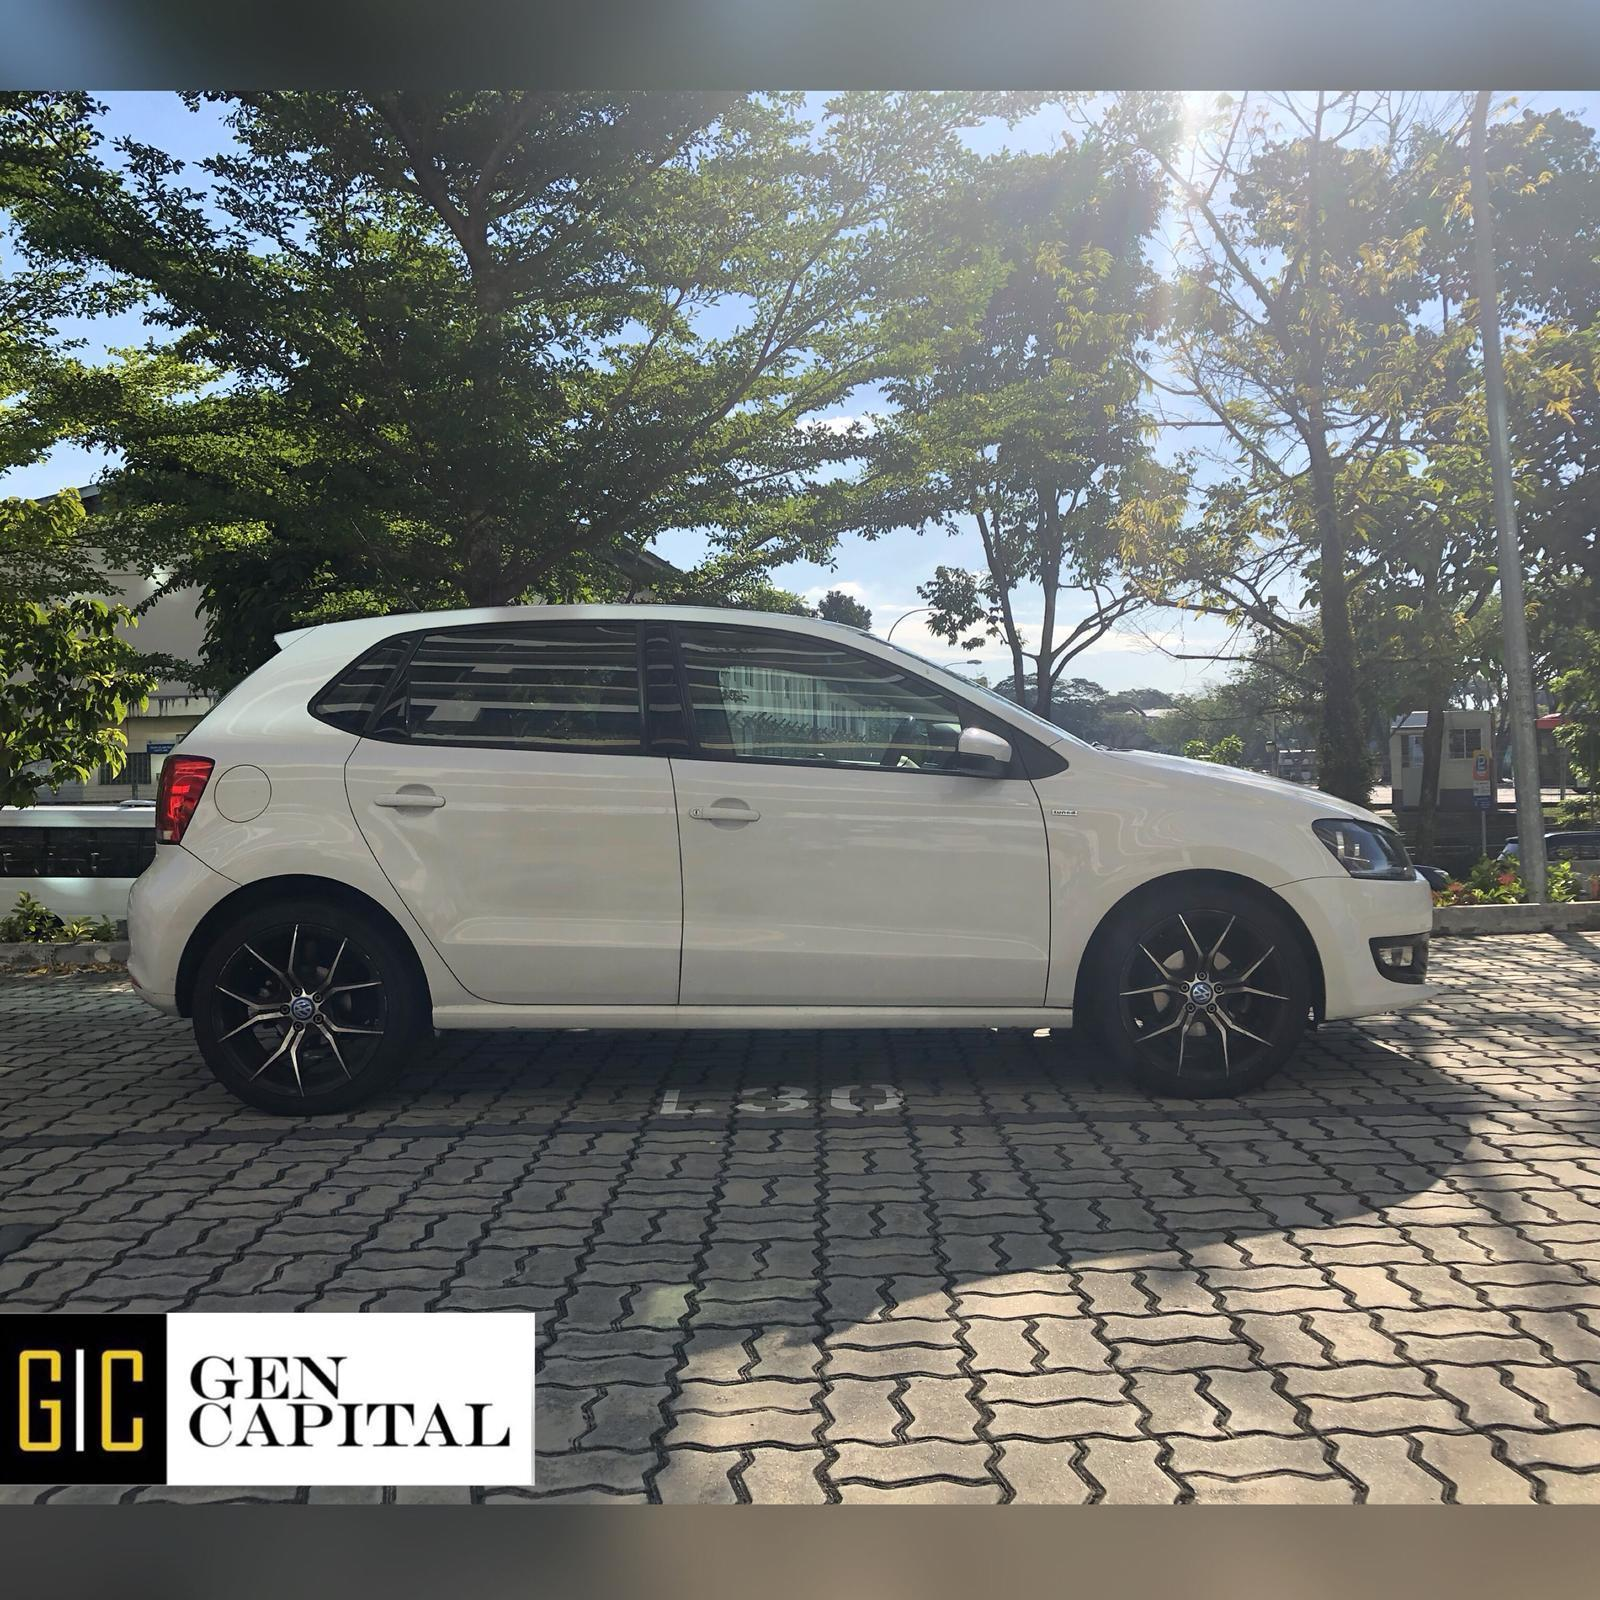 Volkswagen POLO 1.4 Grab Gojek Ryde Tada Friendly & Non PHV Car Rental